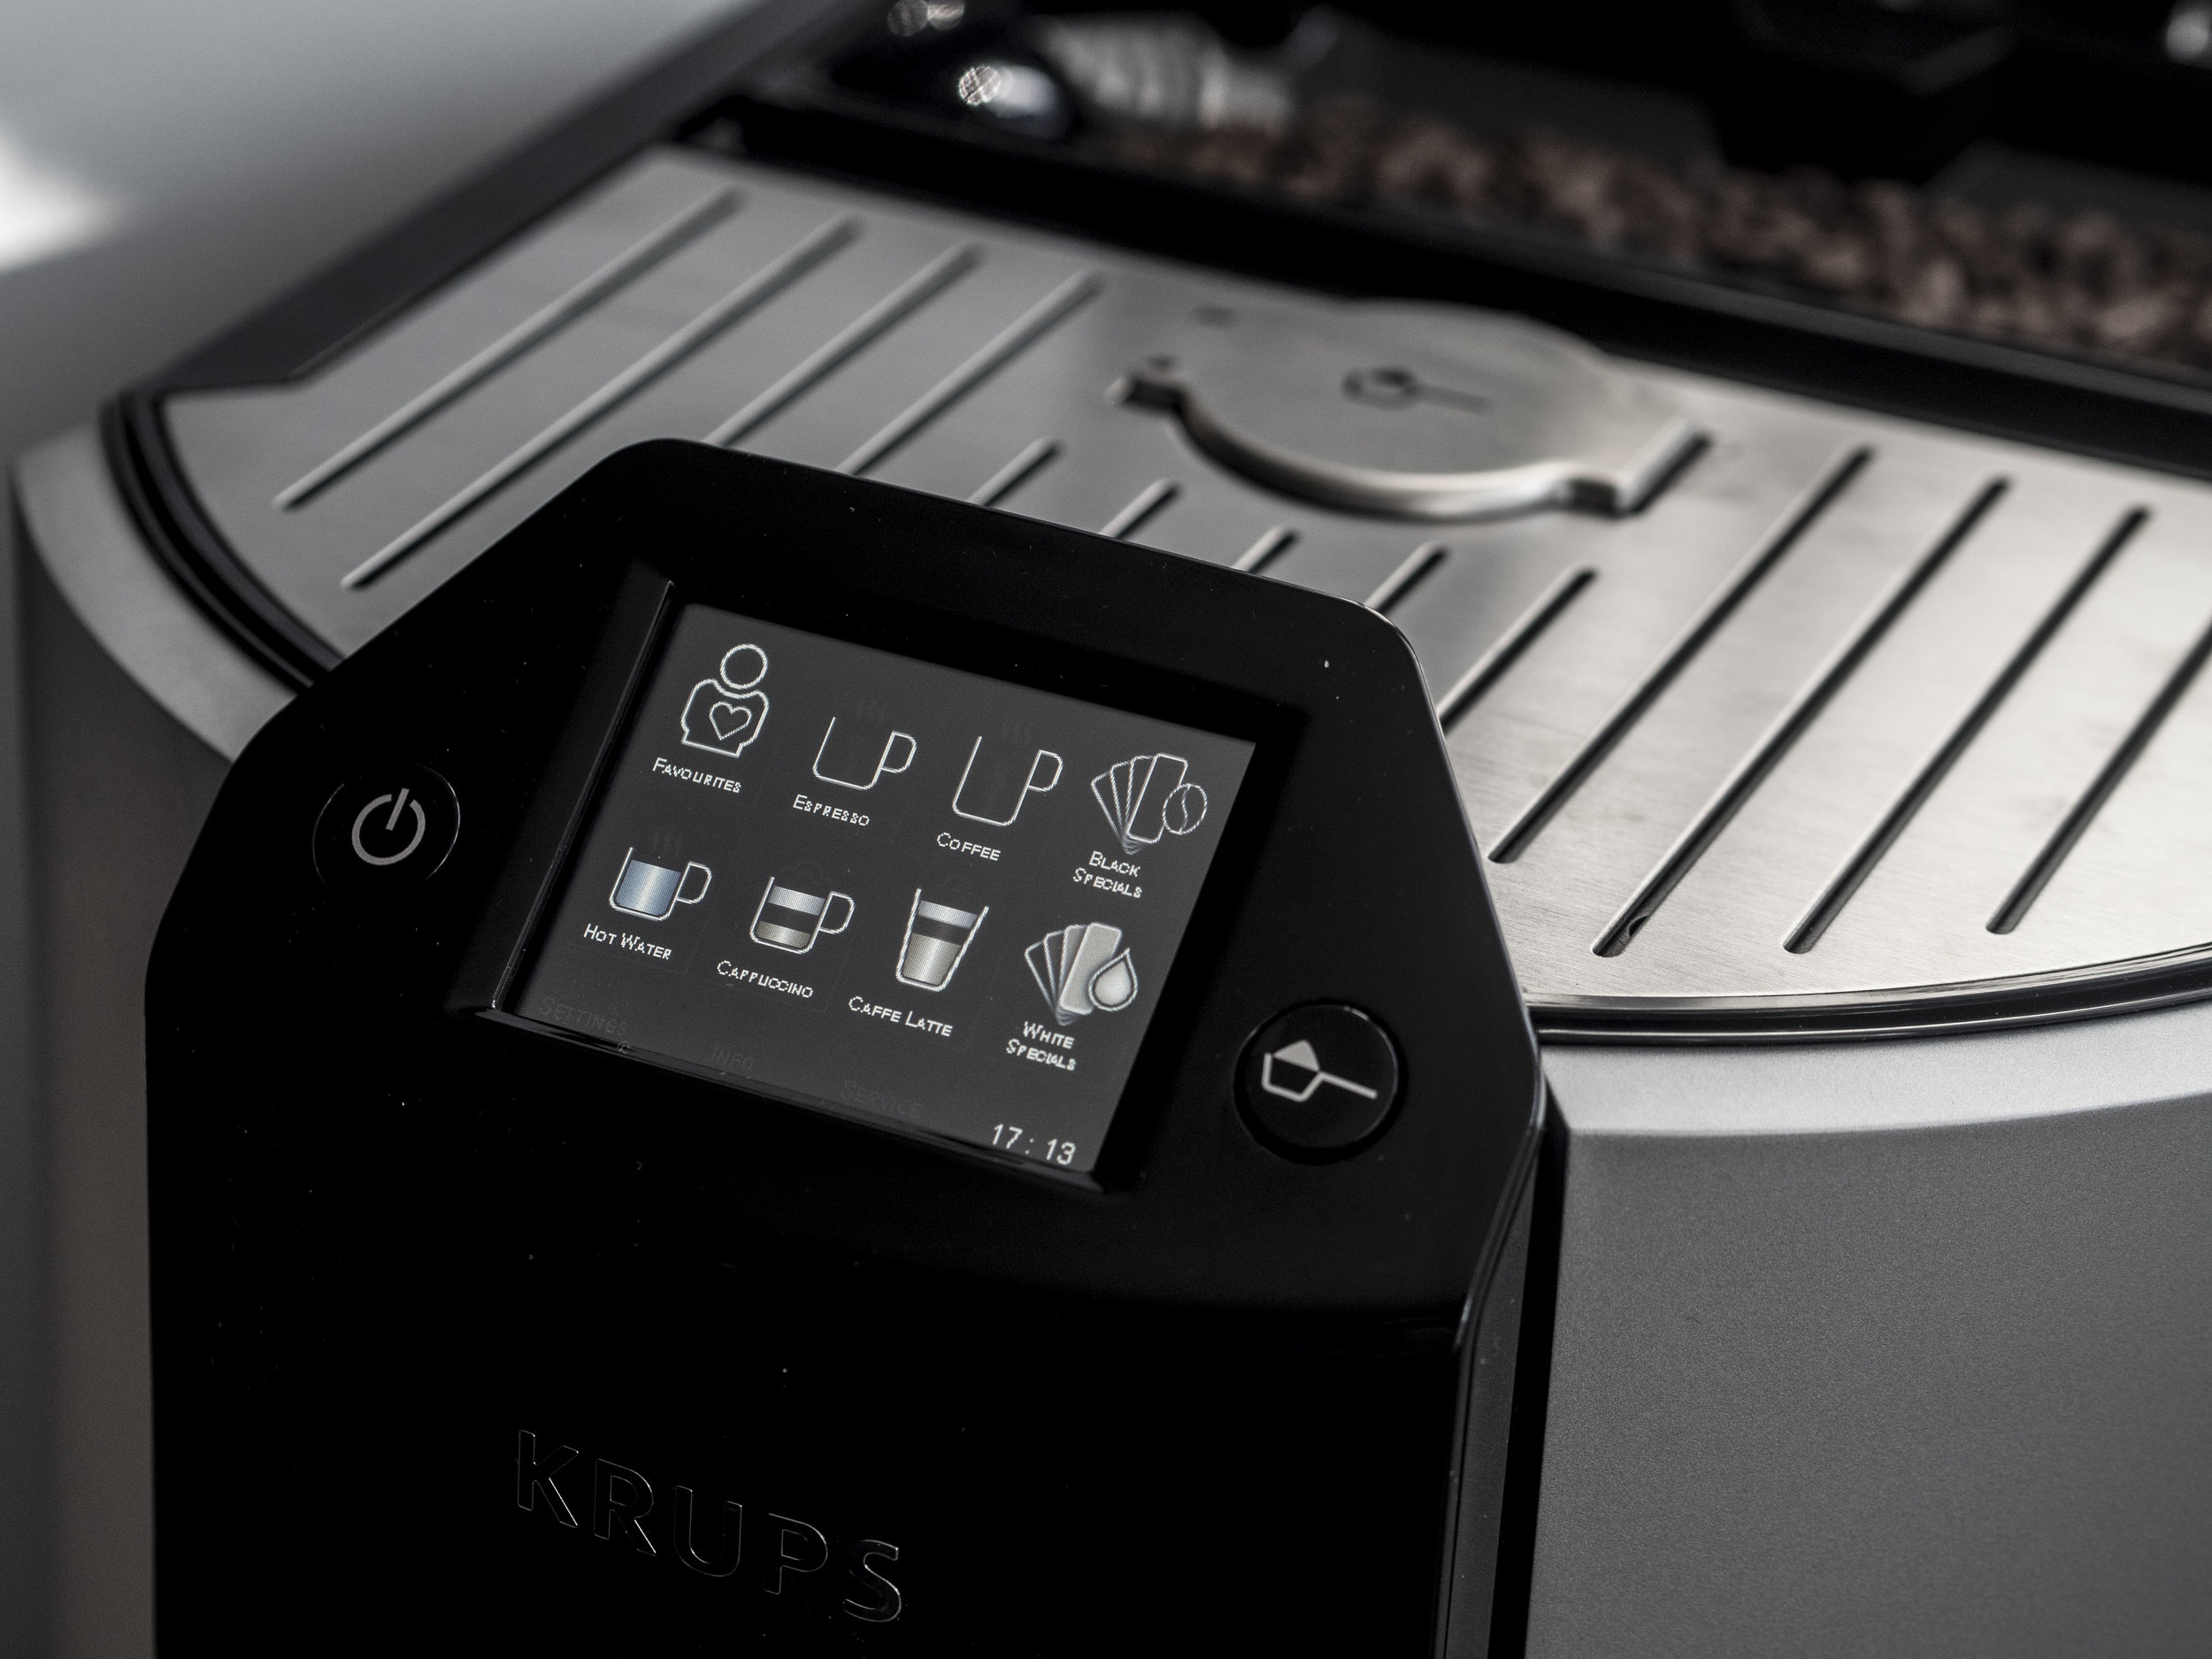 KRUPS EA9000 Series Coffee Machine Review